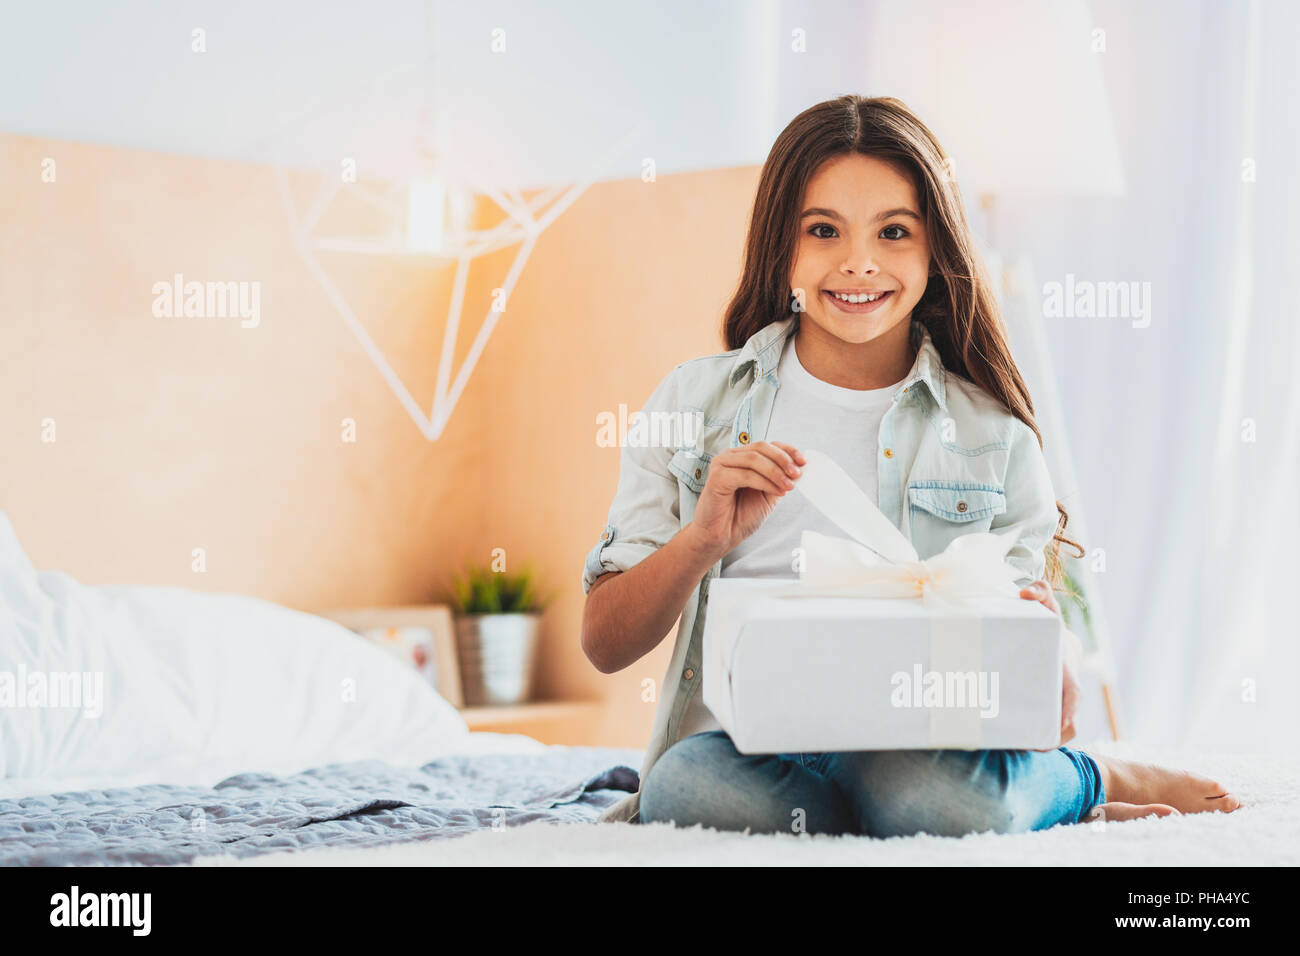 Daughter wondering about her amusing present from parents - Stock Image